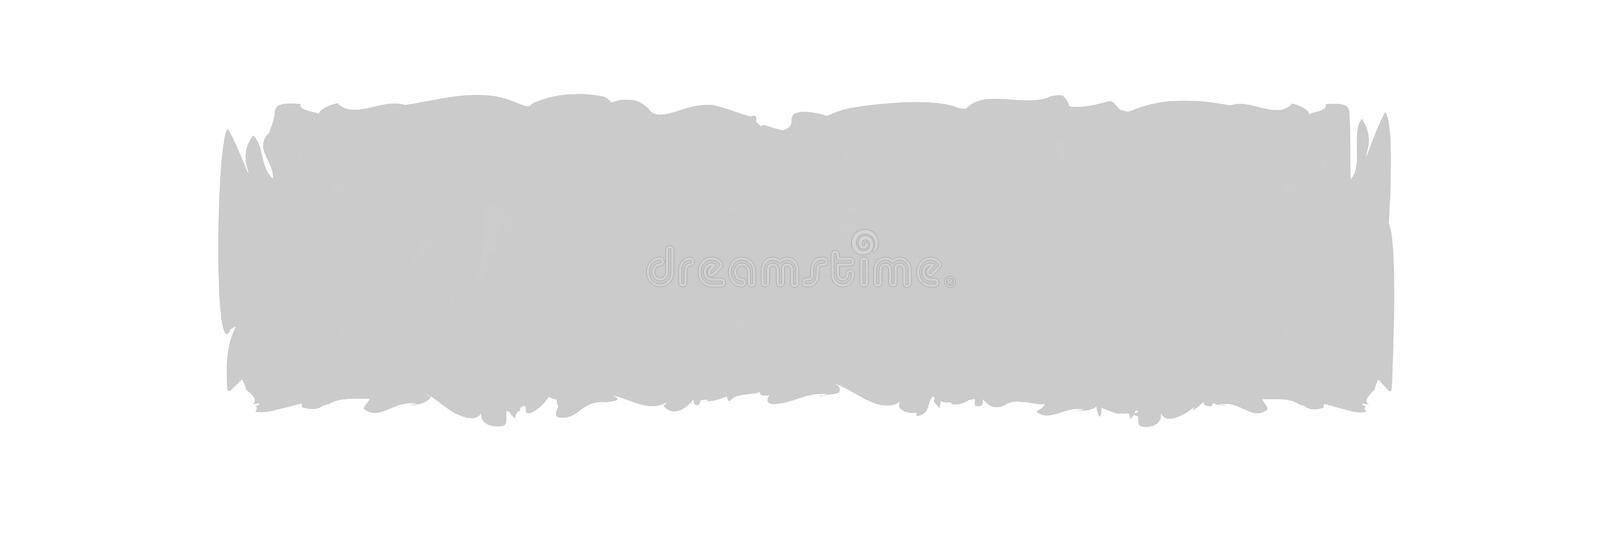 Grey stripe painted in watercolor on clean white background, grey watercolor brush strokes, illustration paint brush digital soft. The grey stripe painted in vector illustration